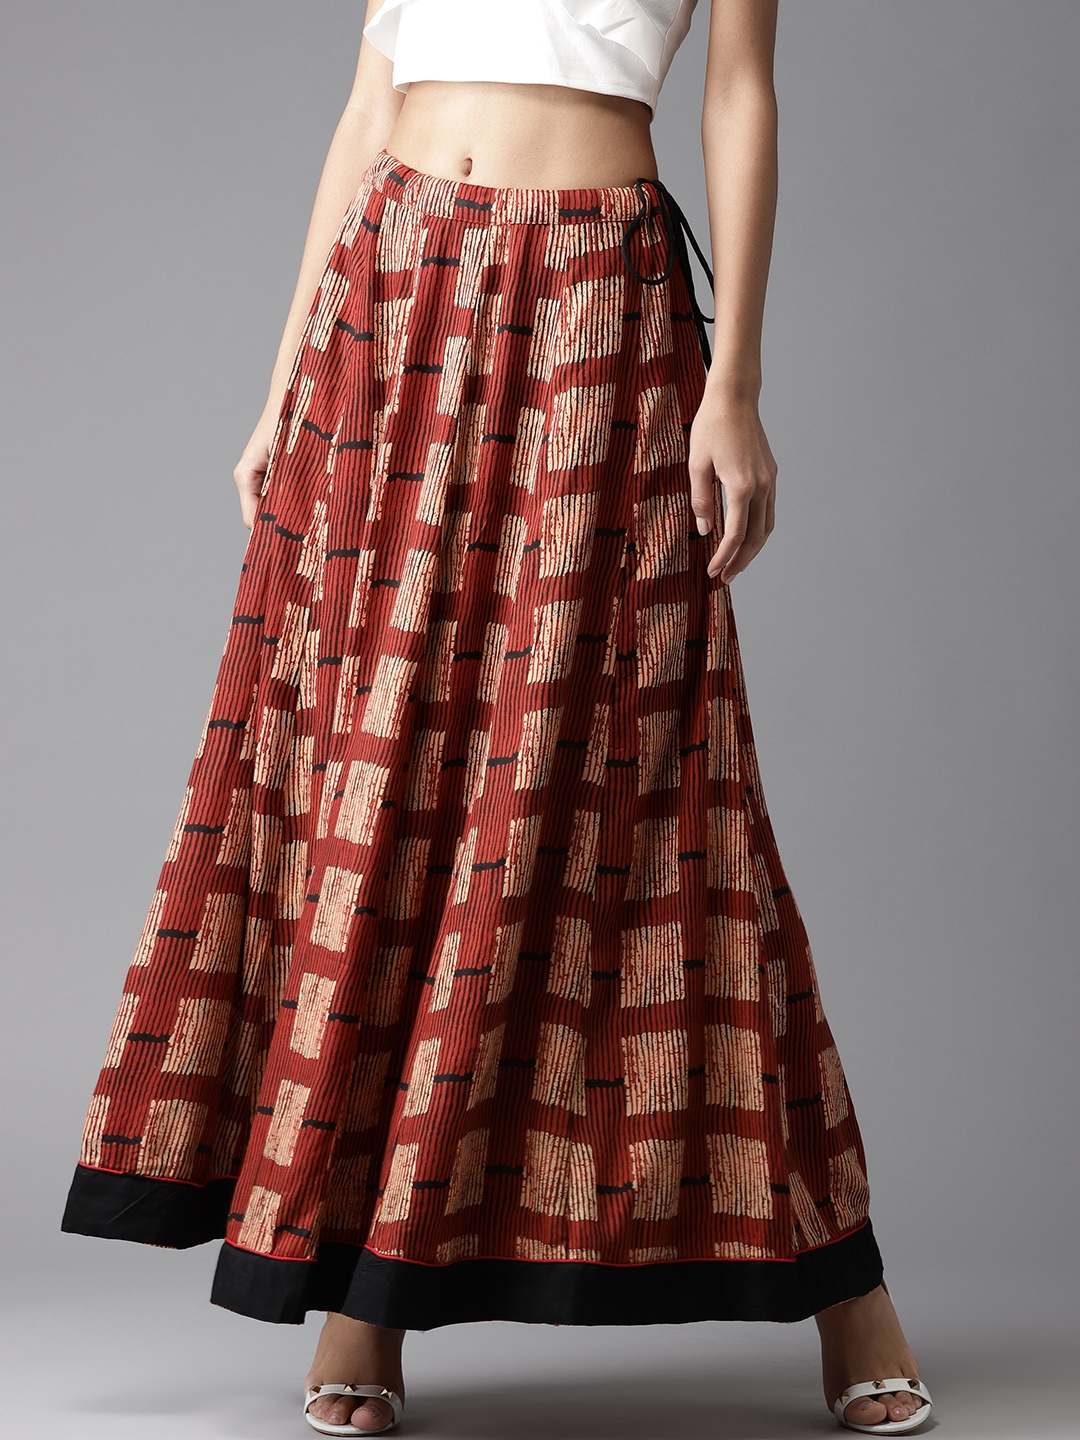 c2f0e31a5 Buy Moda Rapido Rust Red & Beige Printed Maxi Flared Skirt - Skirts ...